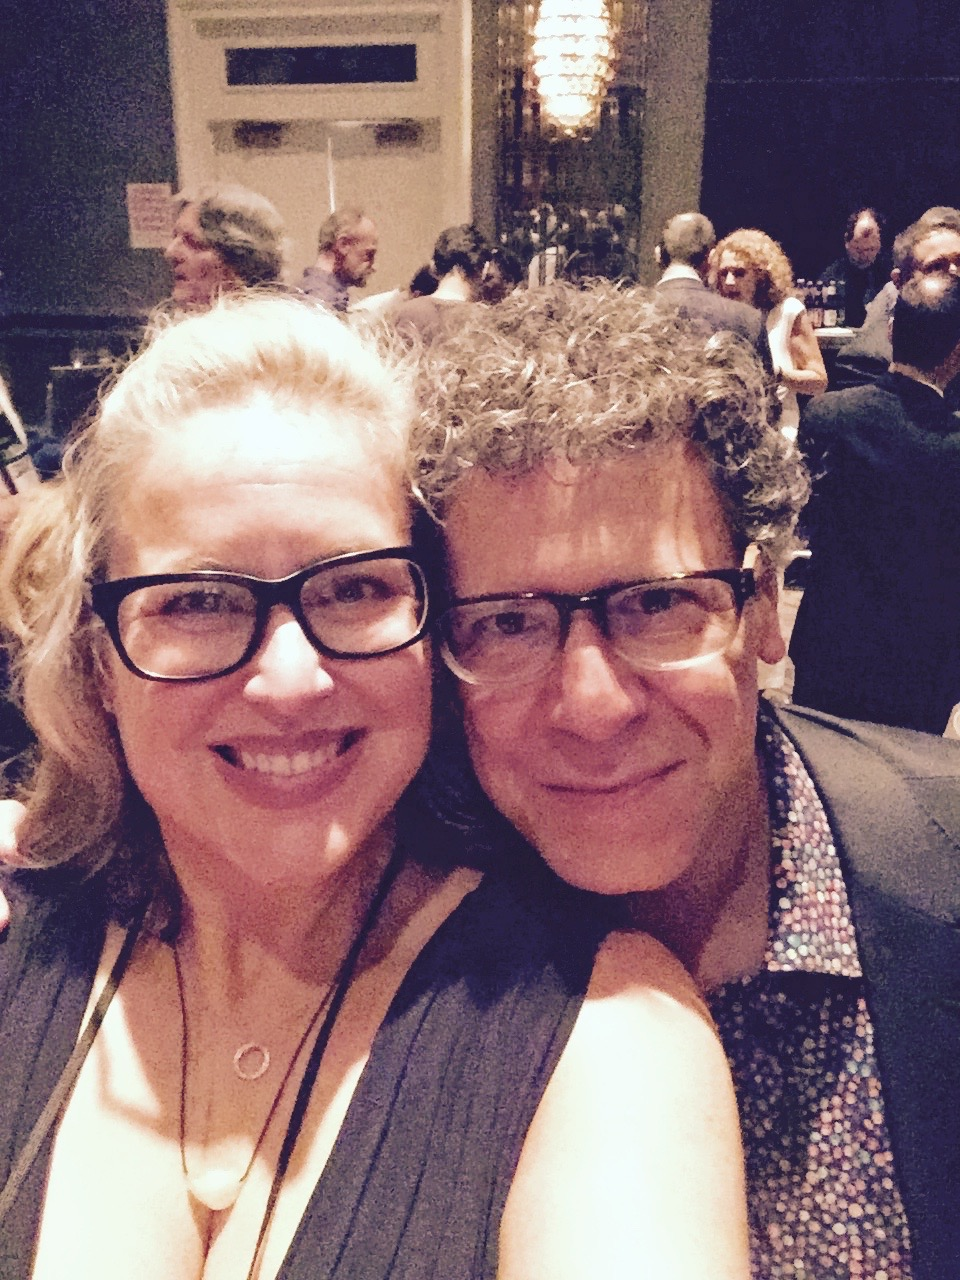 I was lucky enough to chat with SEAN in New York last week at Thrillerfest!